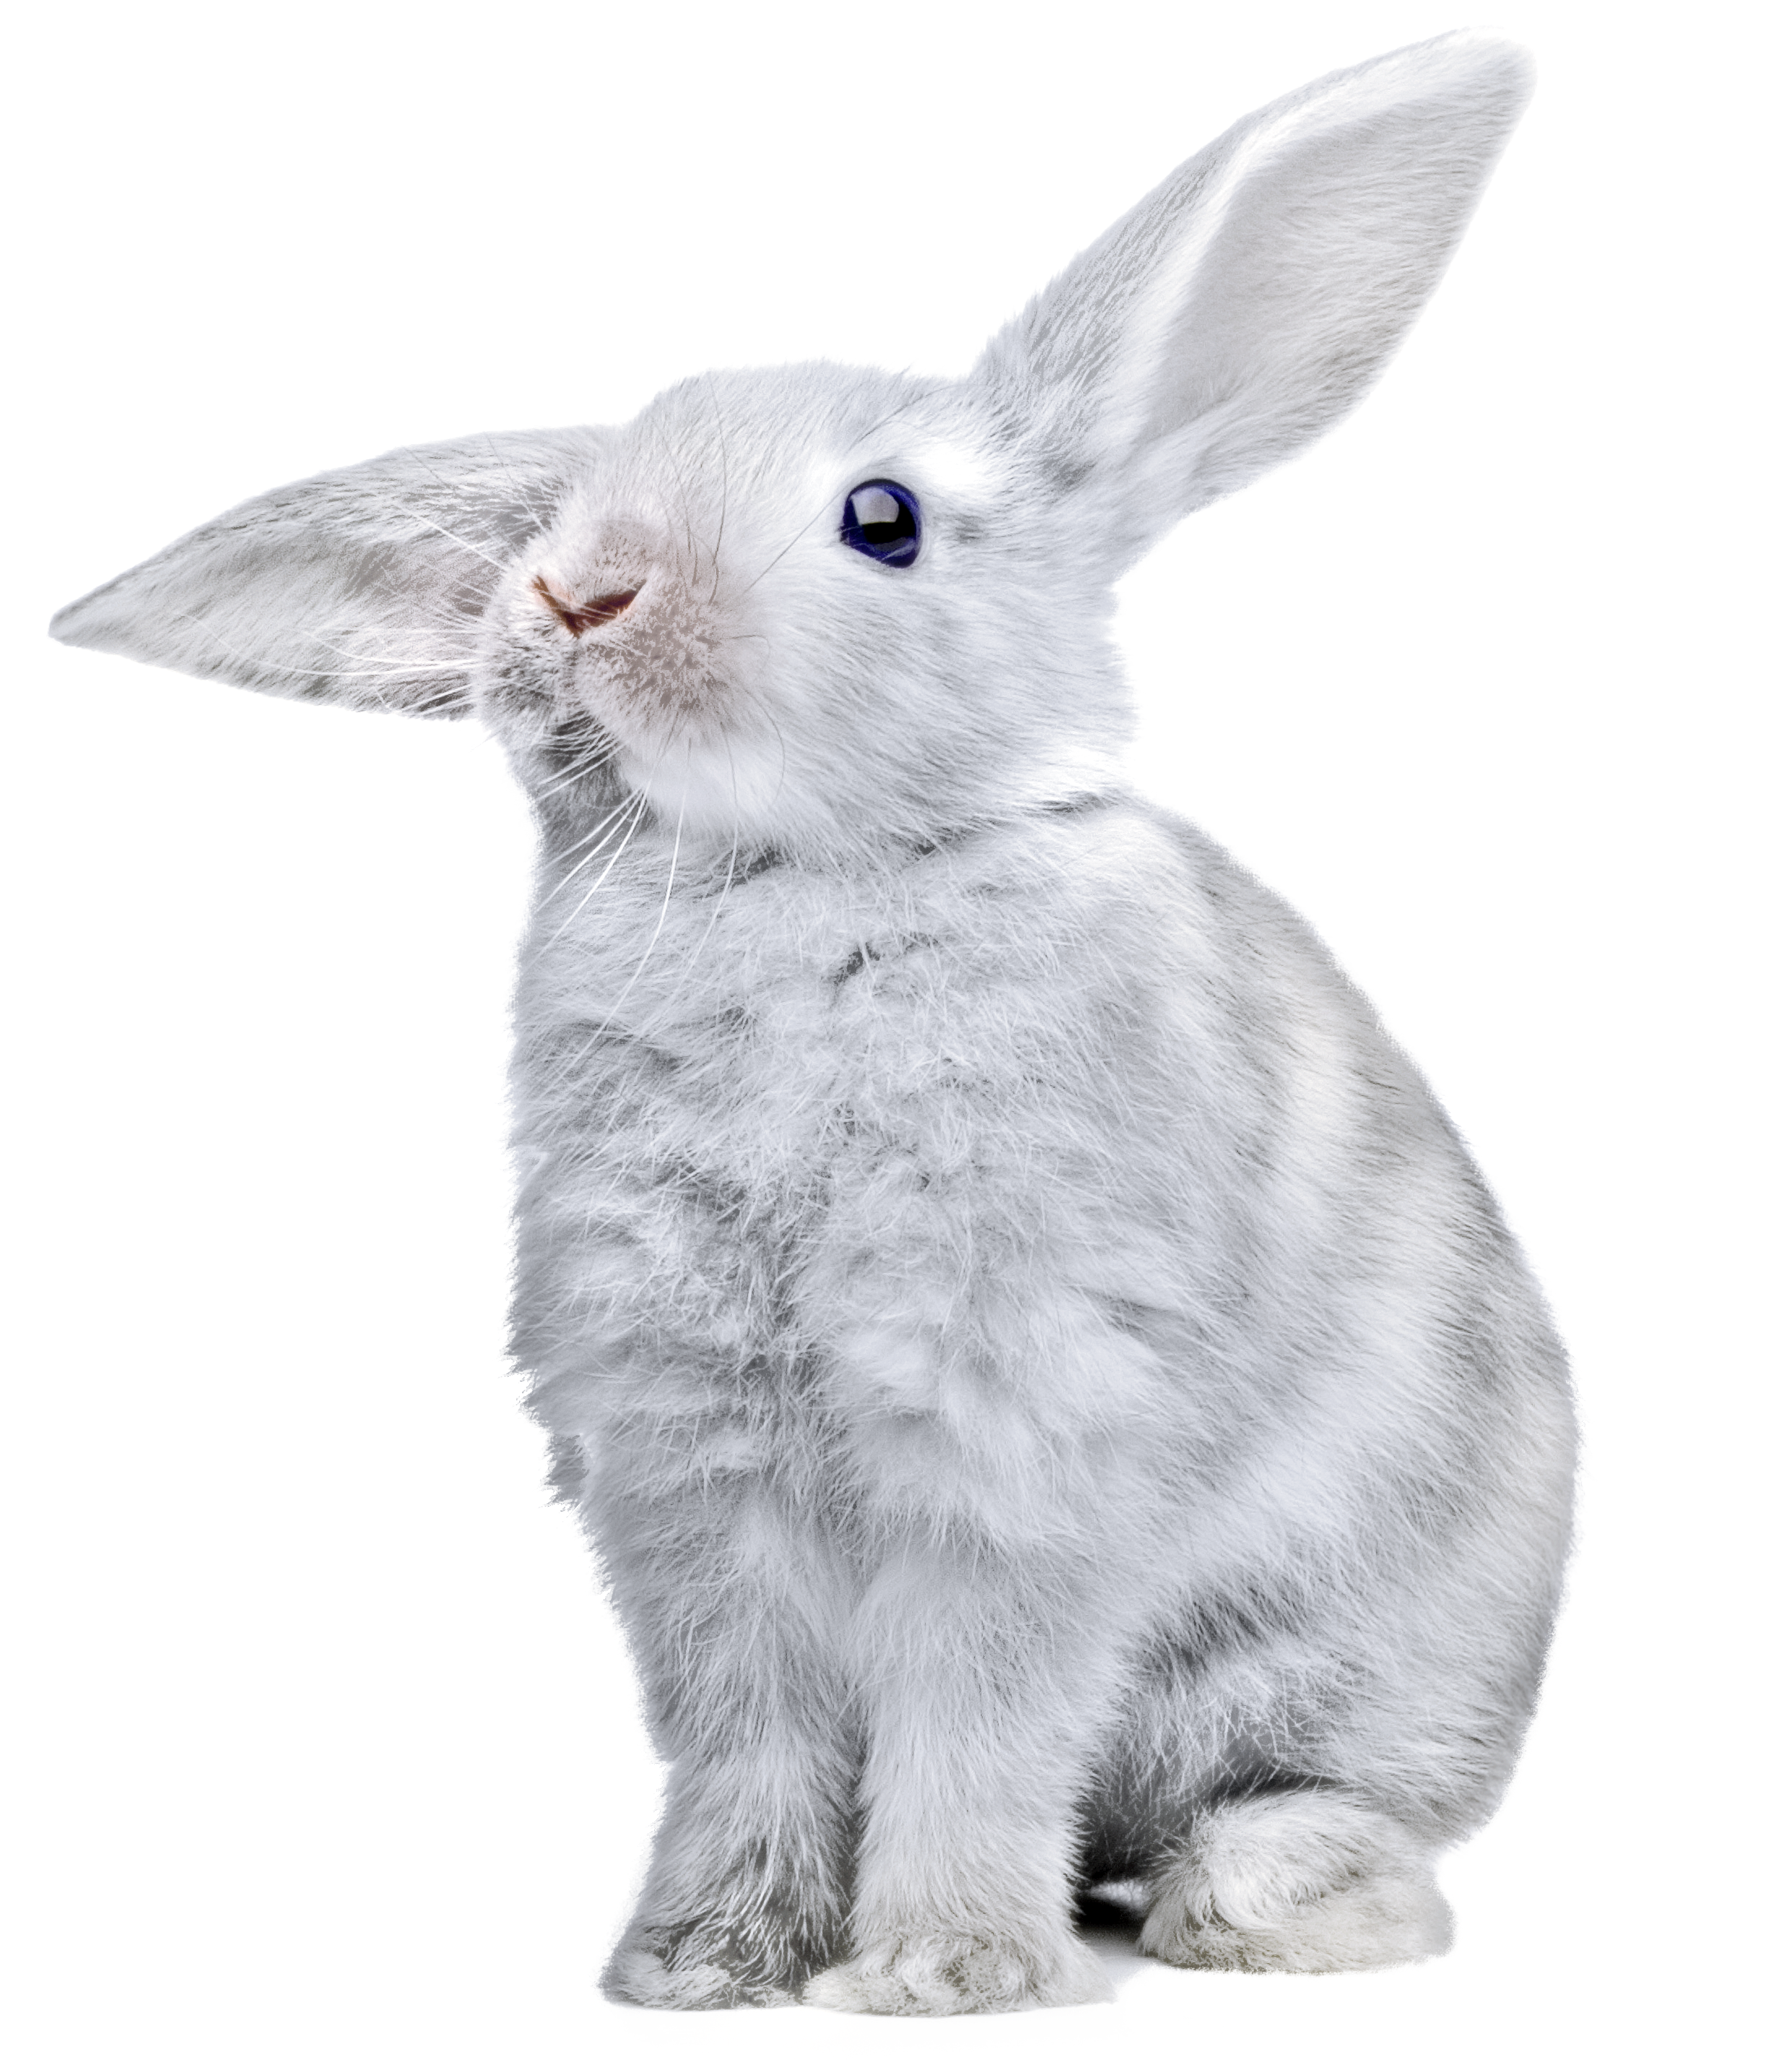 Rabbit Png Images Free Png Rabbit Pictures Download Rabbit Png Rabbit Pictures Animal Clipart